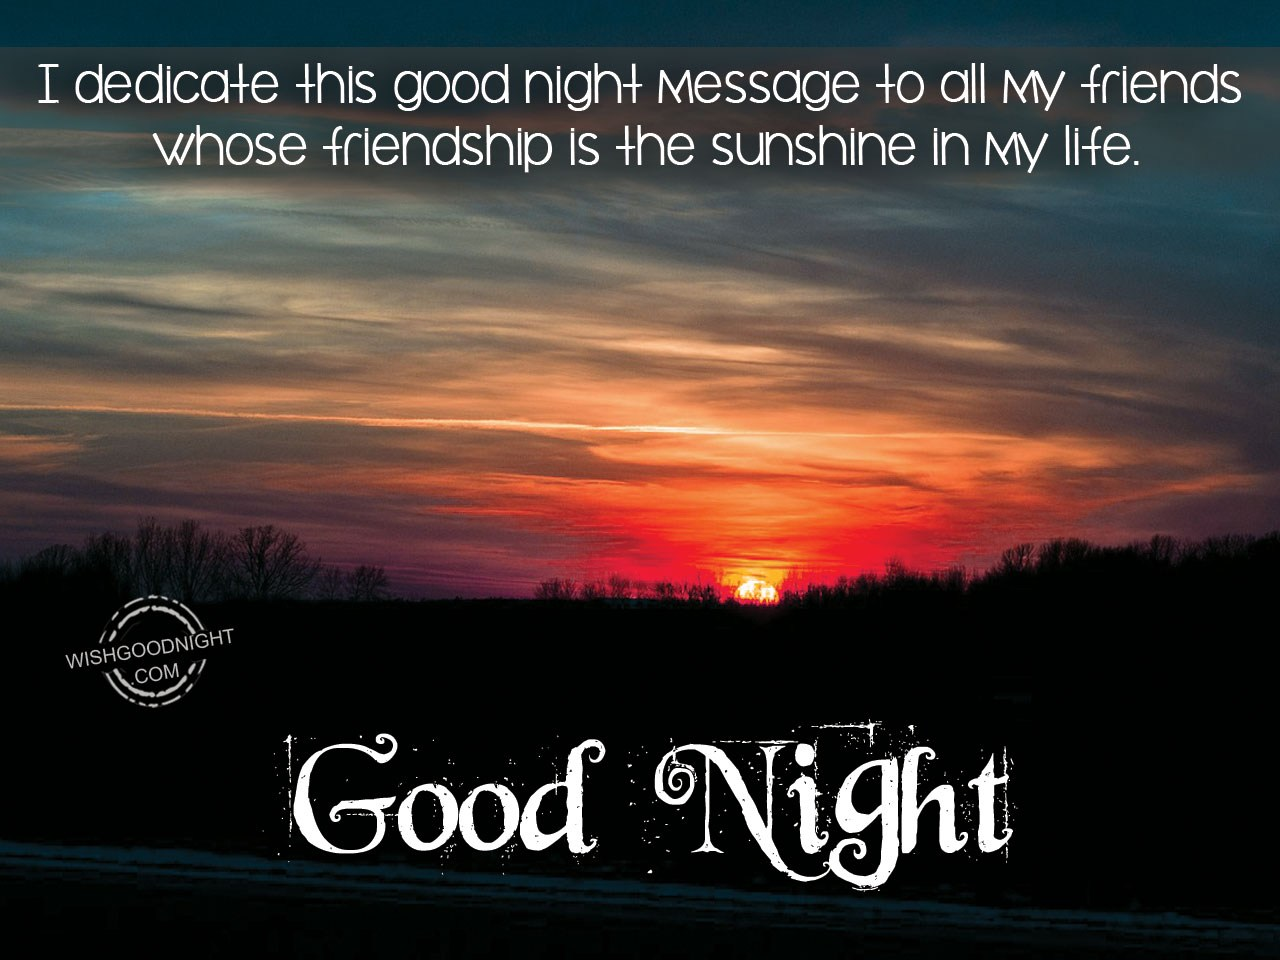 I Dedicate This Good Night Message To All My Friends Good Night